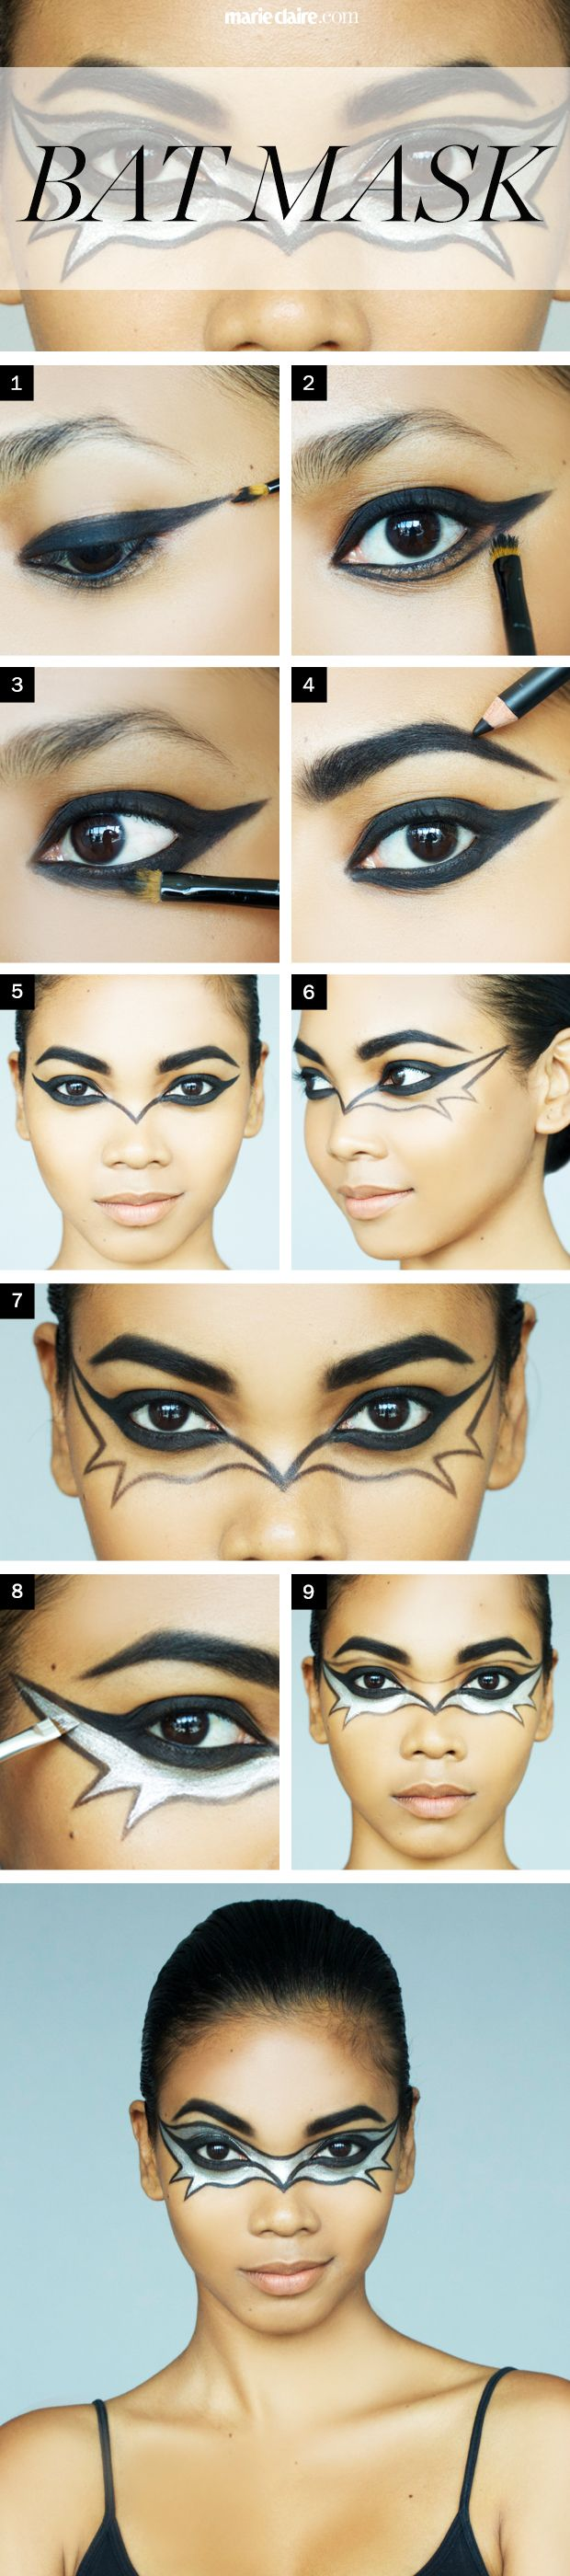 How to Get a Bat Mask Makeup Look for Halloween